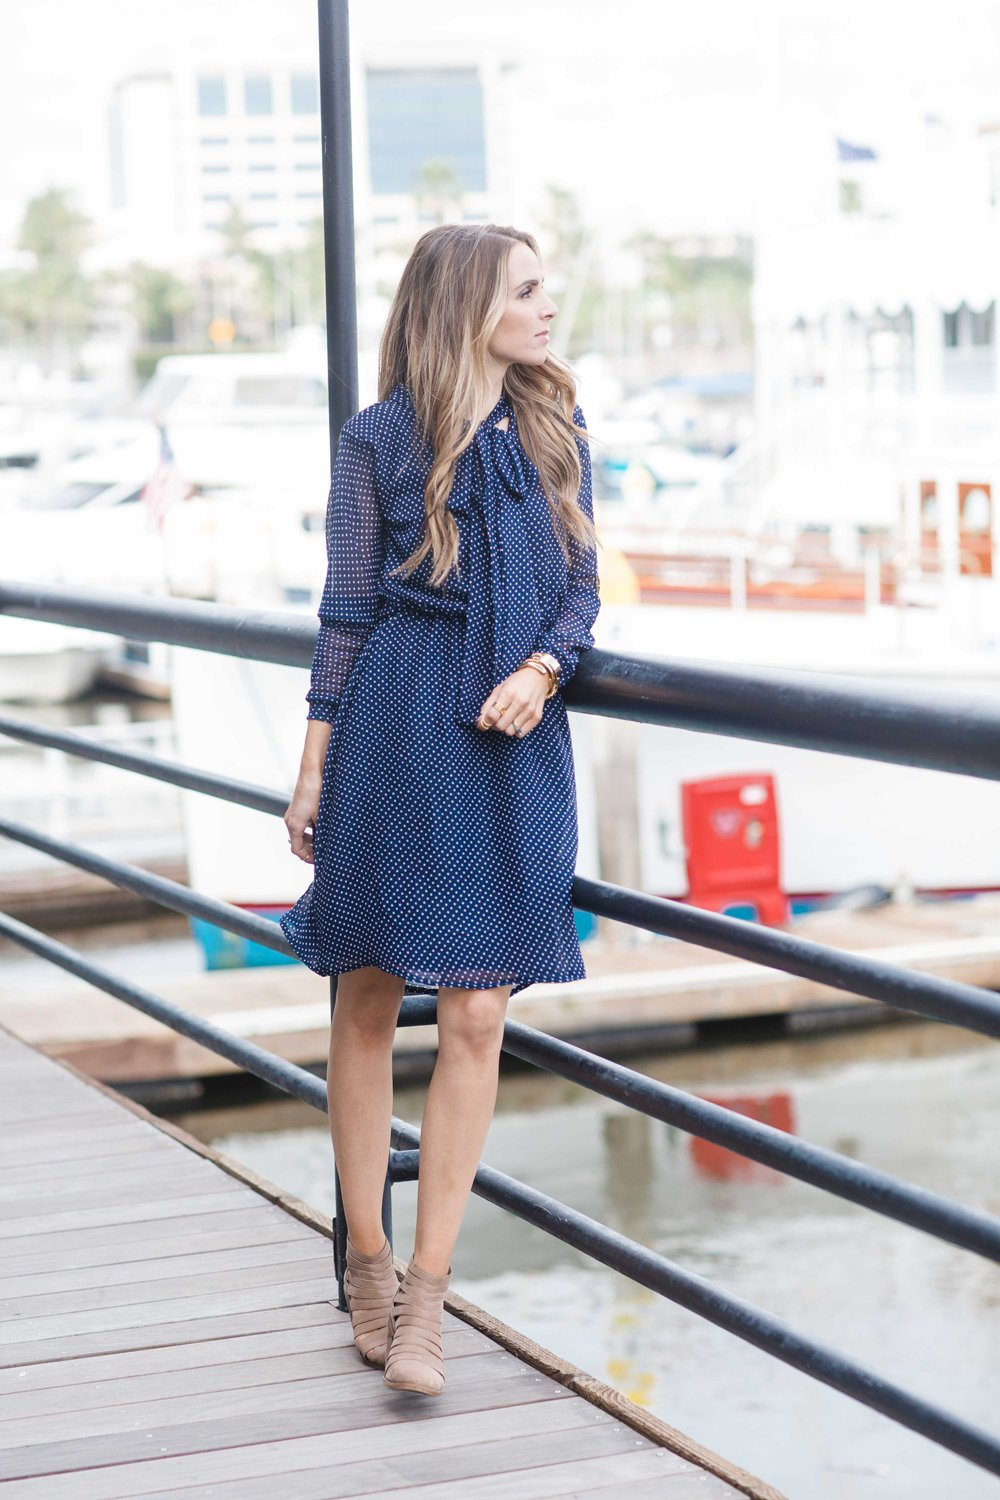 Merrick's Art Nautical Blue Dress